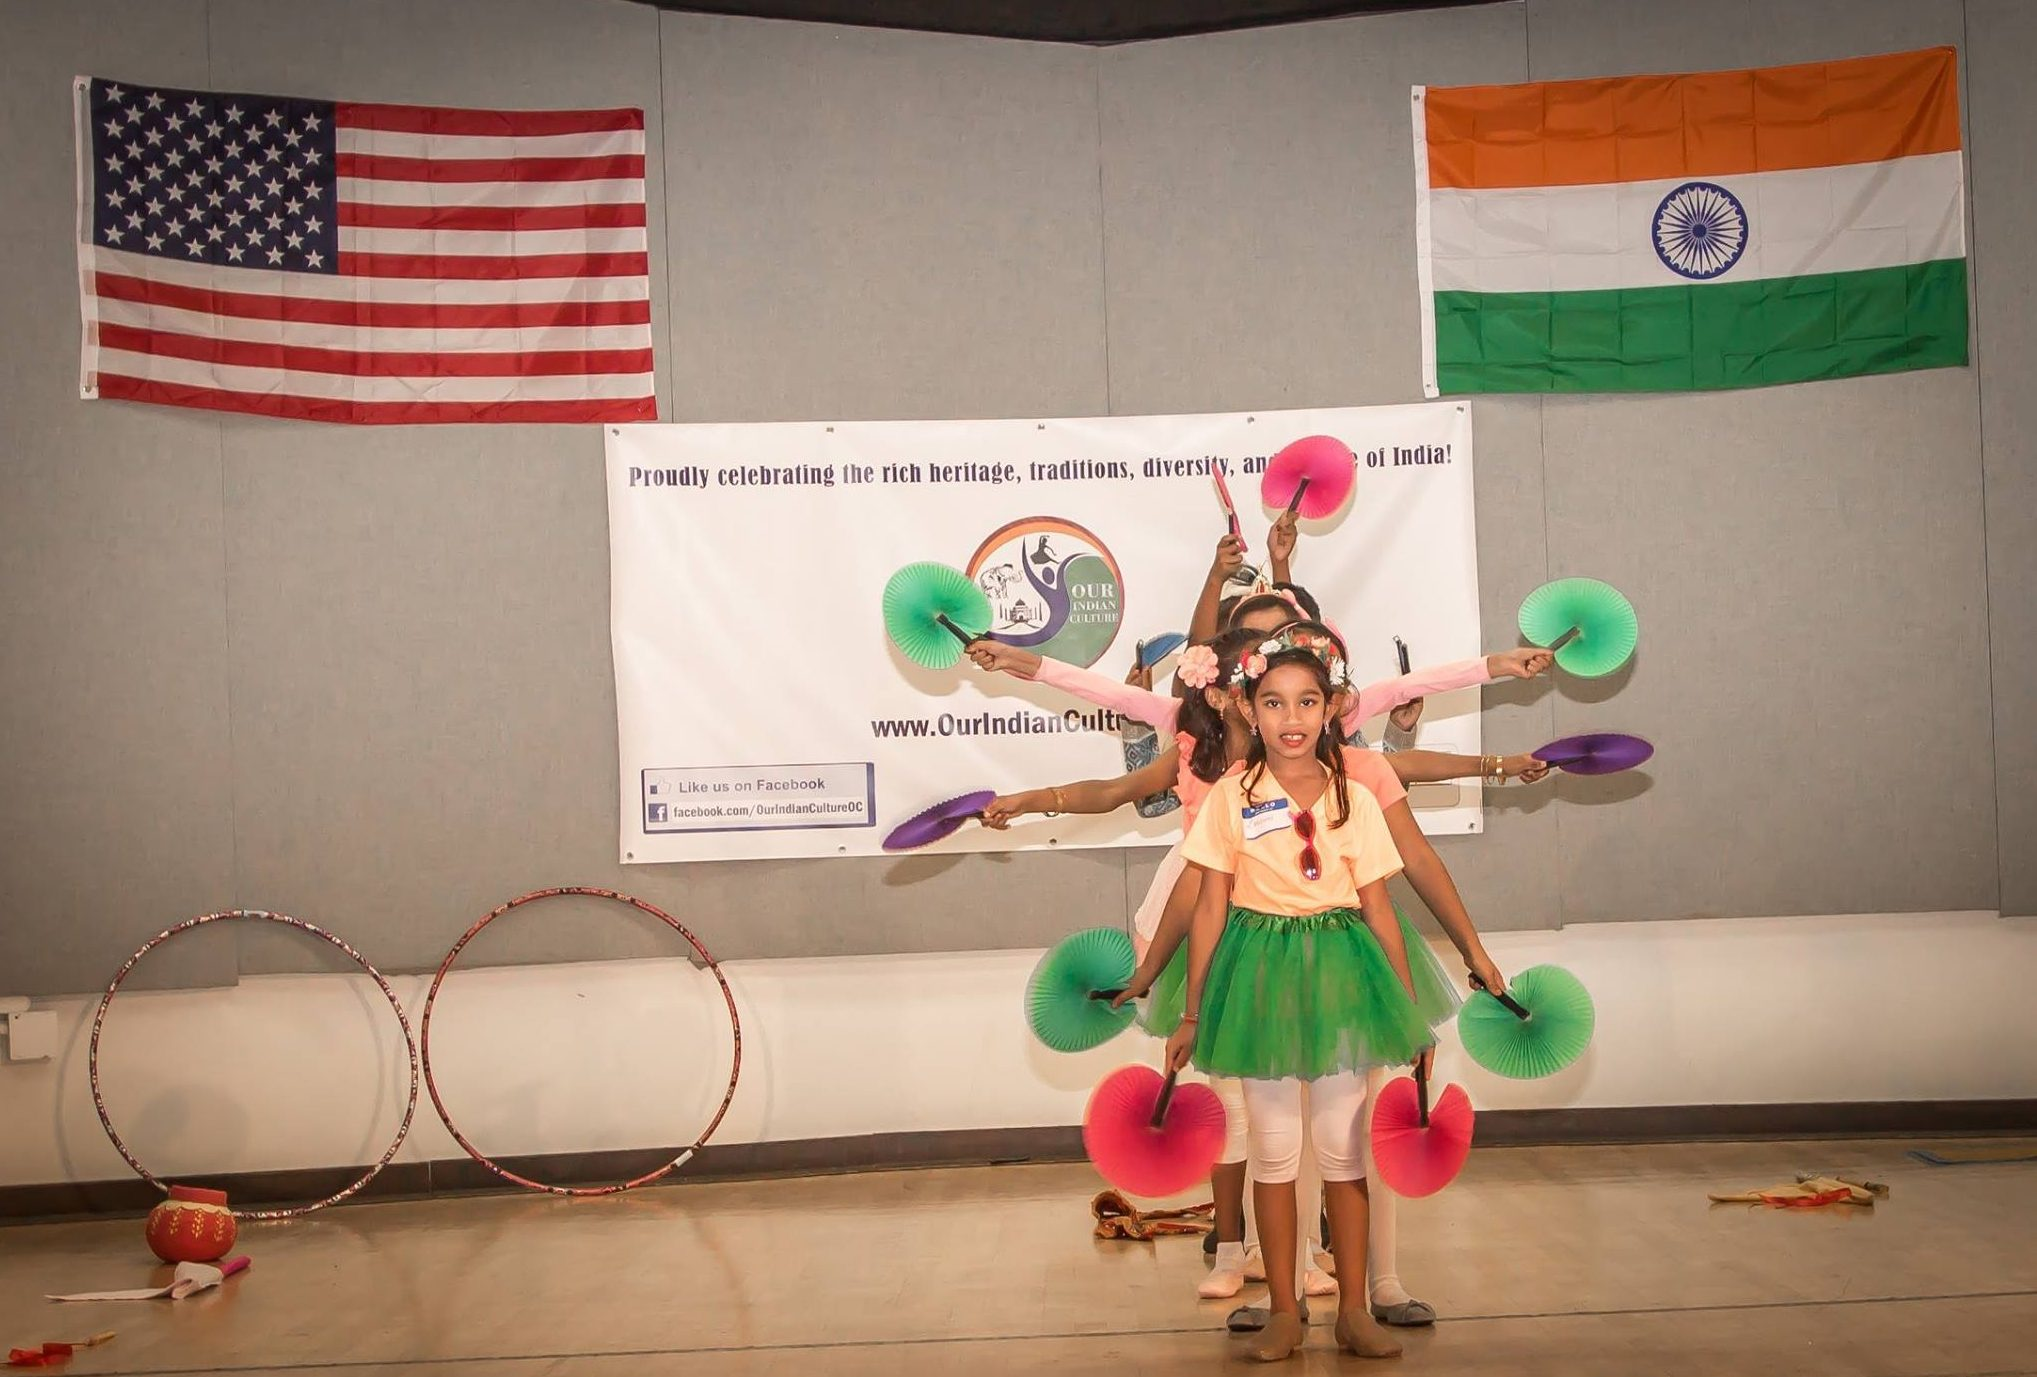 Unity in Diversity Shown at India Indepedence Day Celebration event organized by OurIndianCulture.com